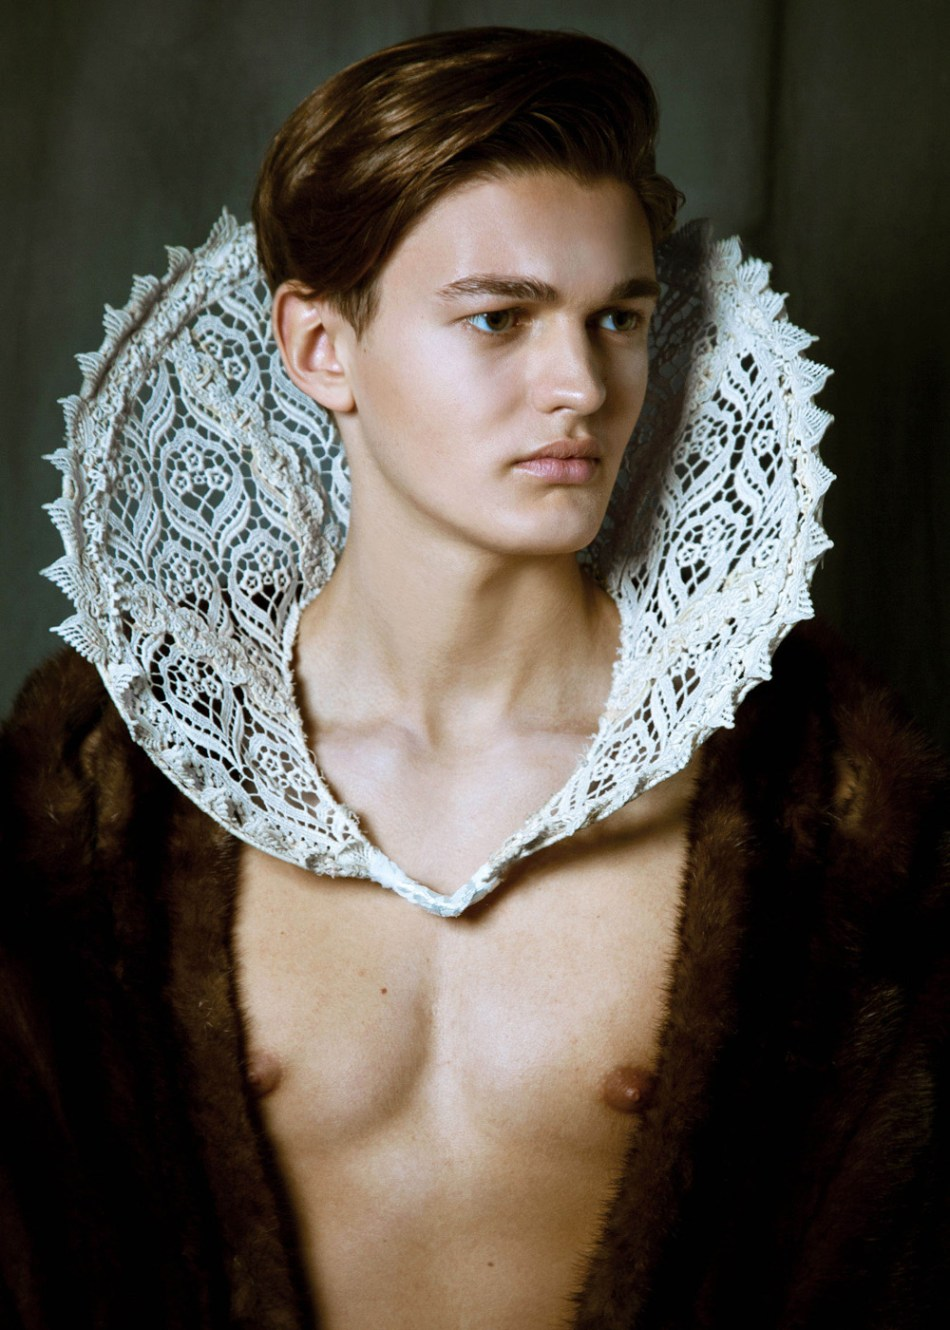 """""""The Cult Of Beauty"""" work by photographer Scallywag Fox featuring male model Gabriel Lindsay at AMCK Models. Stylist by Lidlbillionaire, MUA: Becci Mapes."""